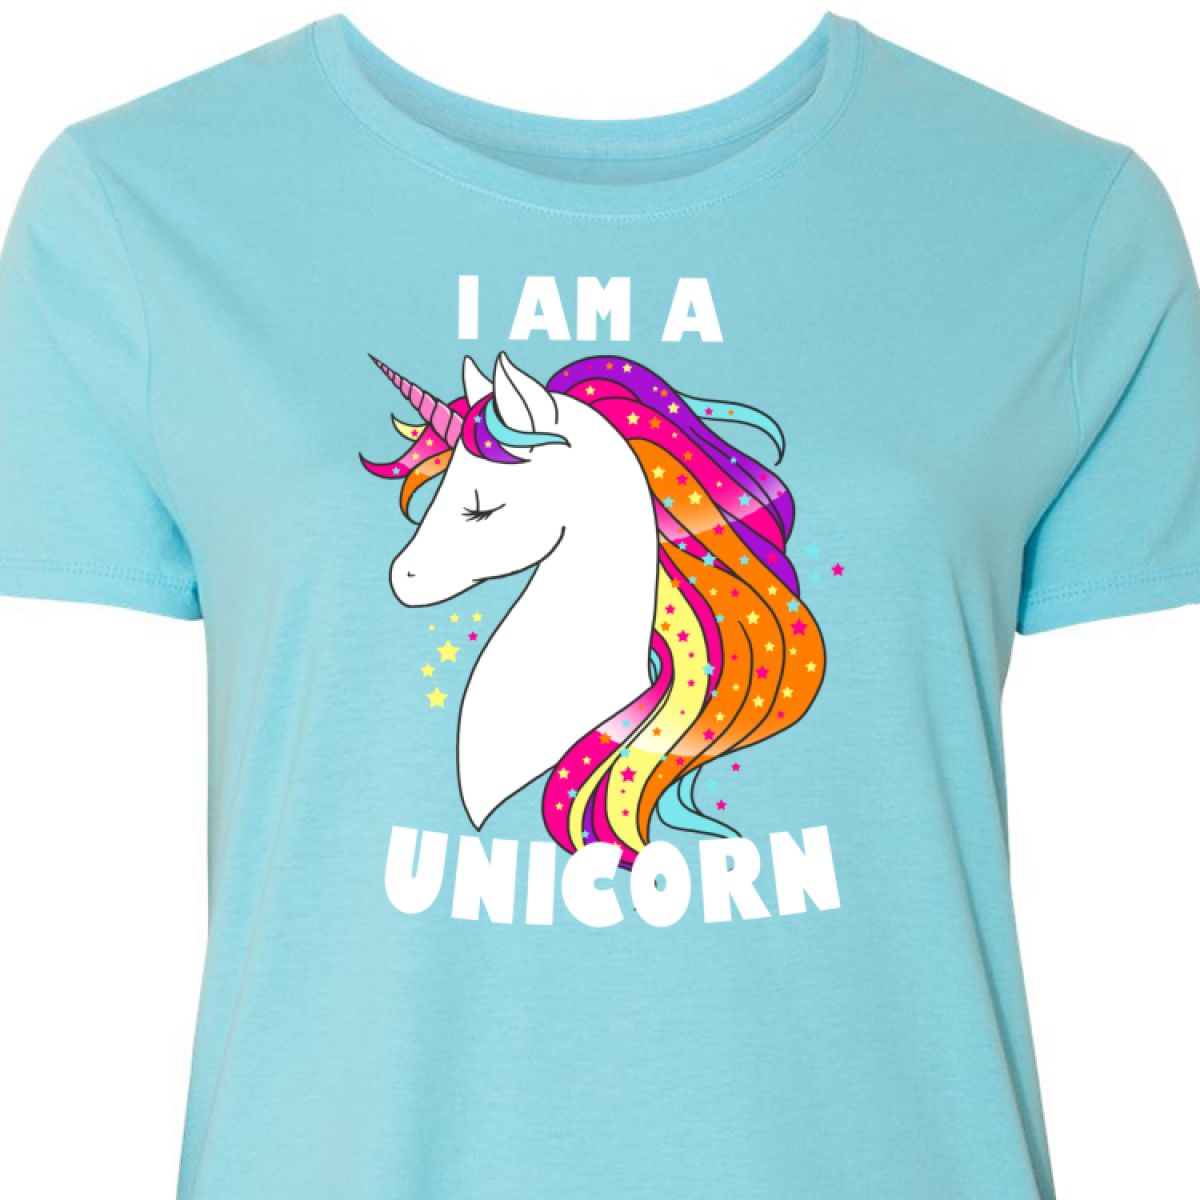 aa5dbf2dd24 Inktastic I Am A Unicorn With Unicorn Illustration Women s Plus Size ...